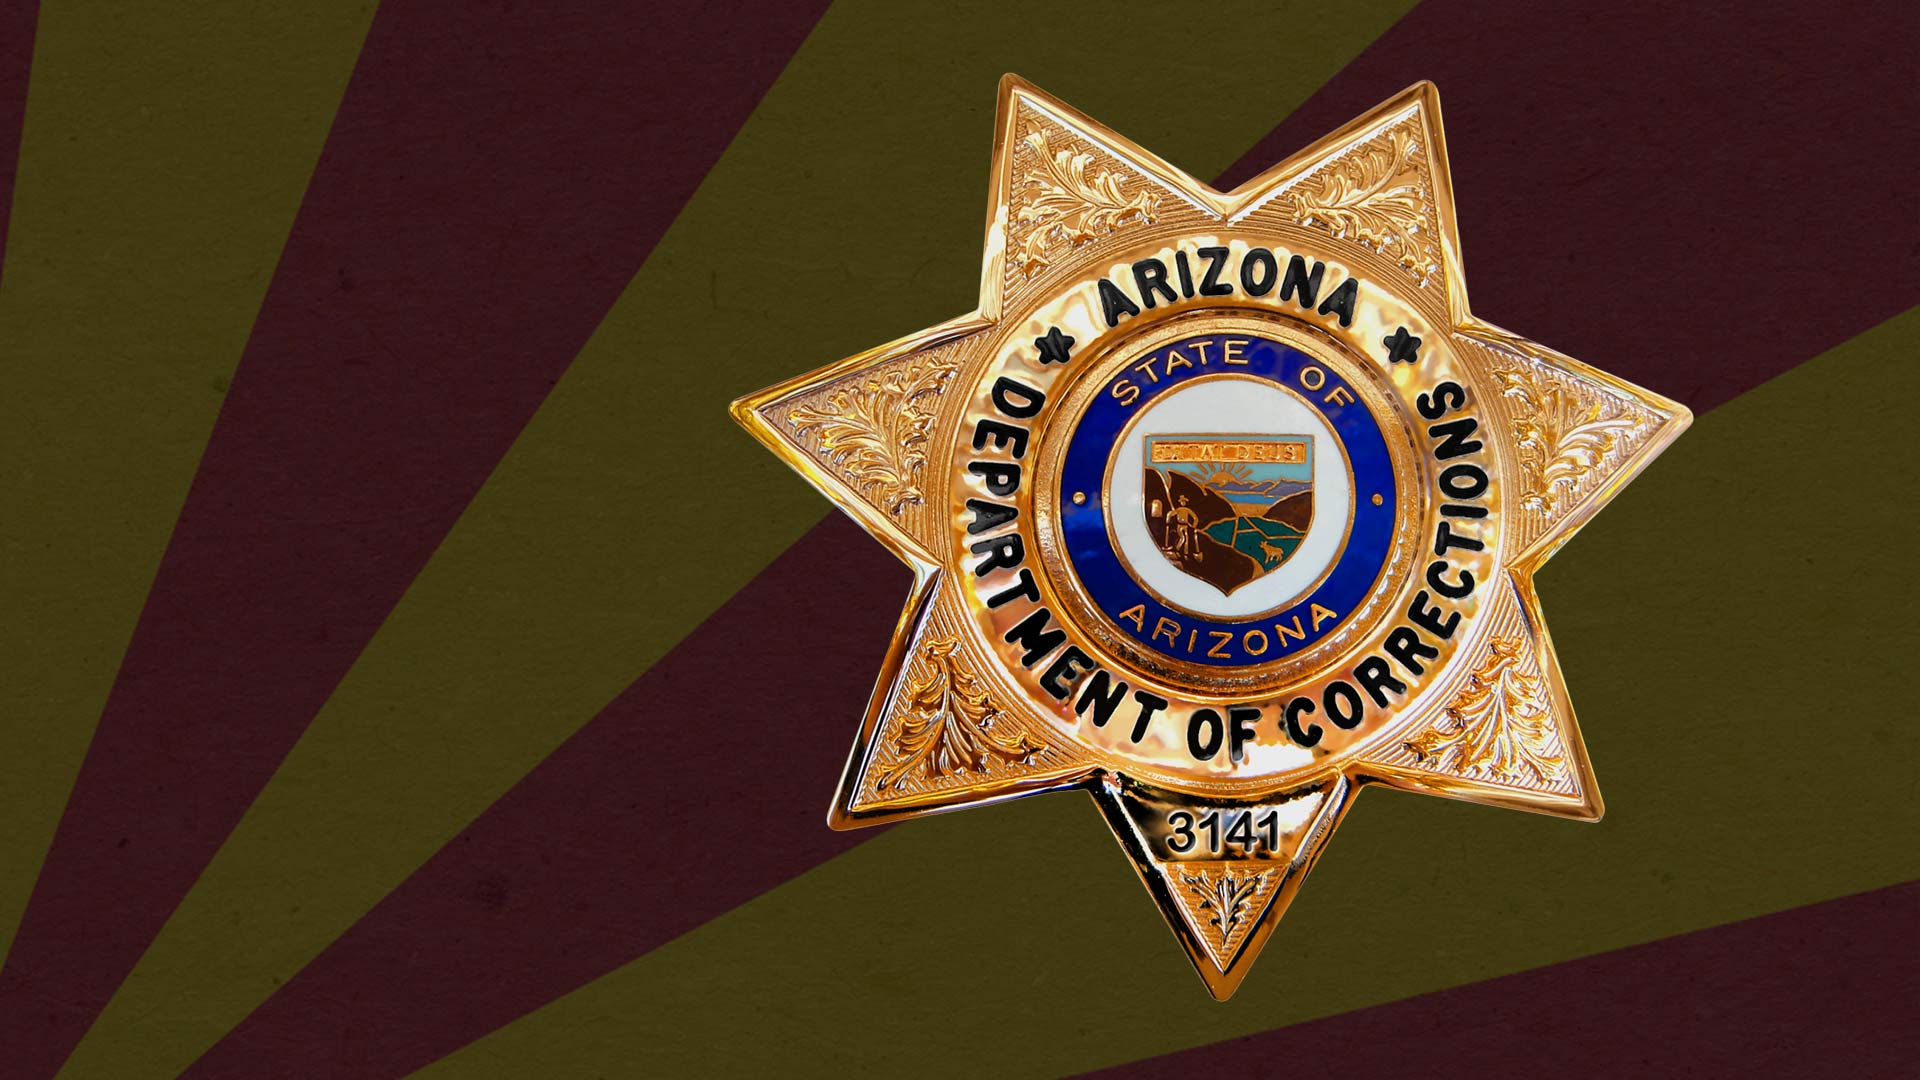 Badge of the Arizona Department of Corrections.